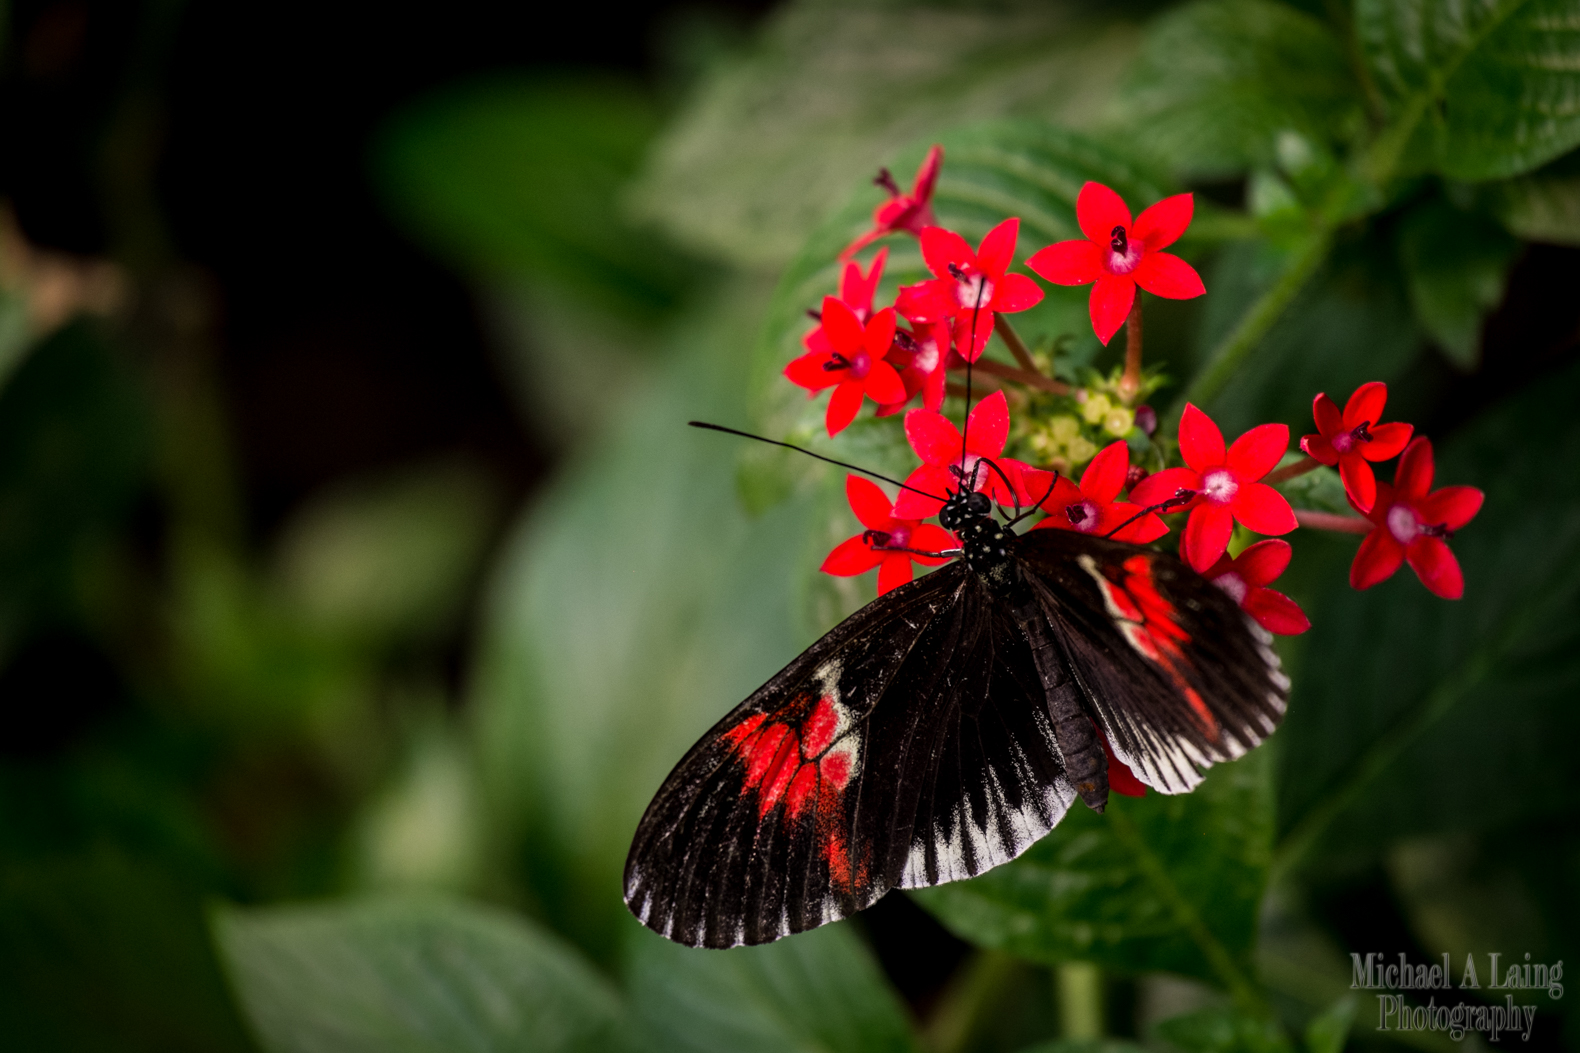 Taken at the butterfly house at London zoo. Whilst the Fuji X-E1 is a great little camera, it probably wasn't the best camera for taking to a zoo, particularly with its rather slow autofocus.